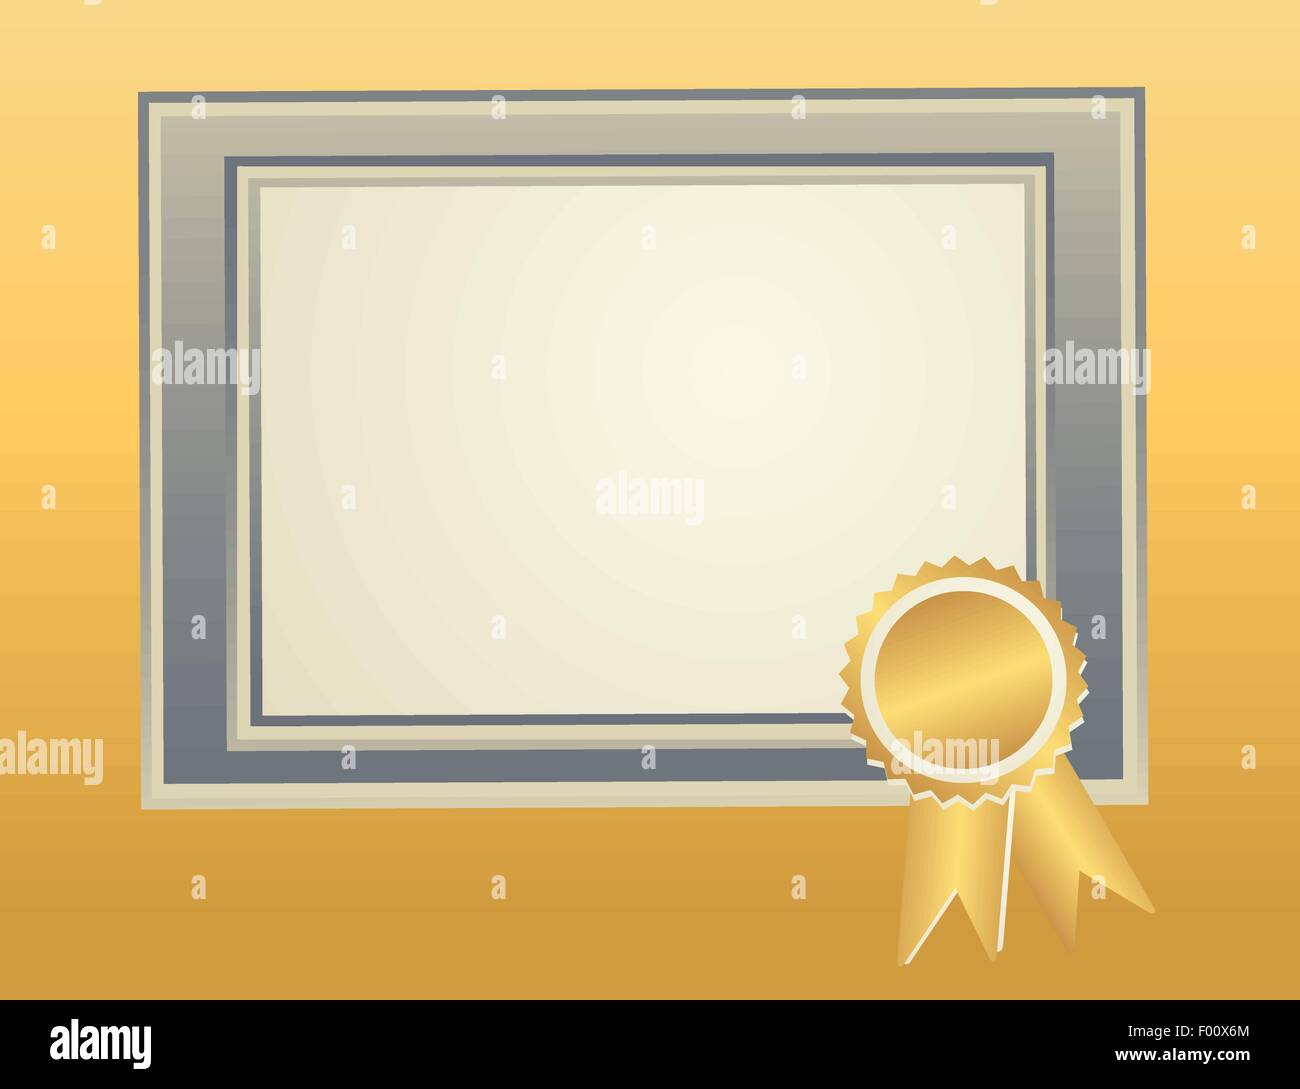 Blank Frame template with award seal for certificate diploma – Template Award